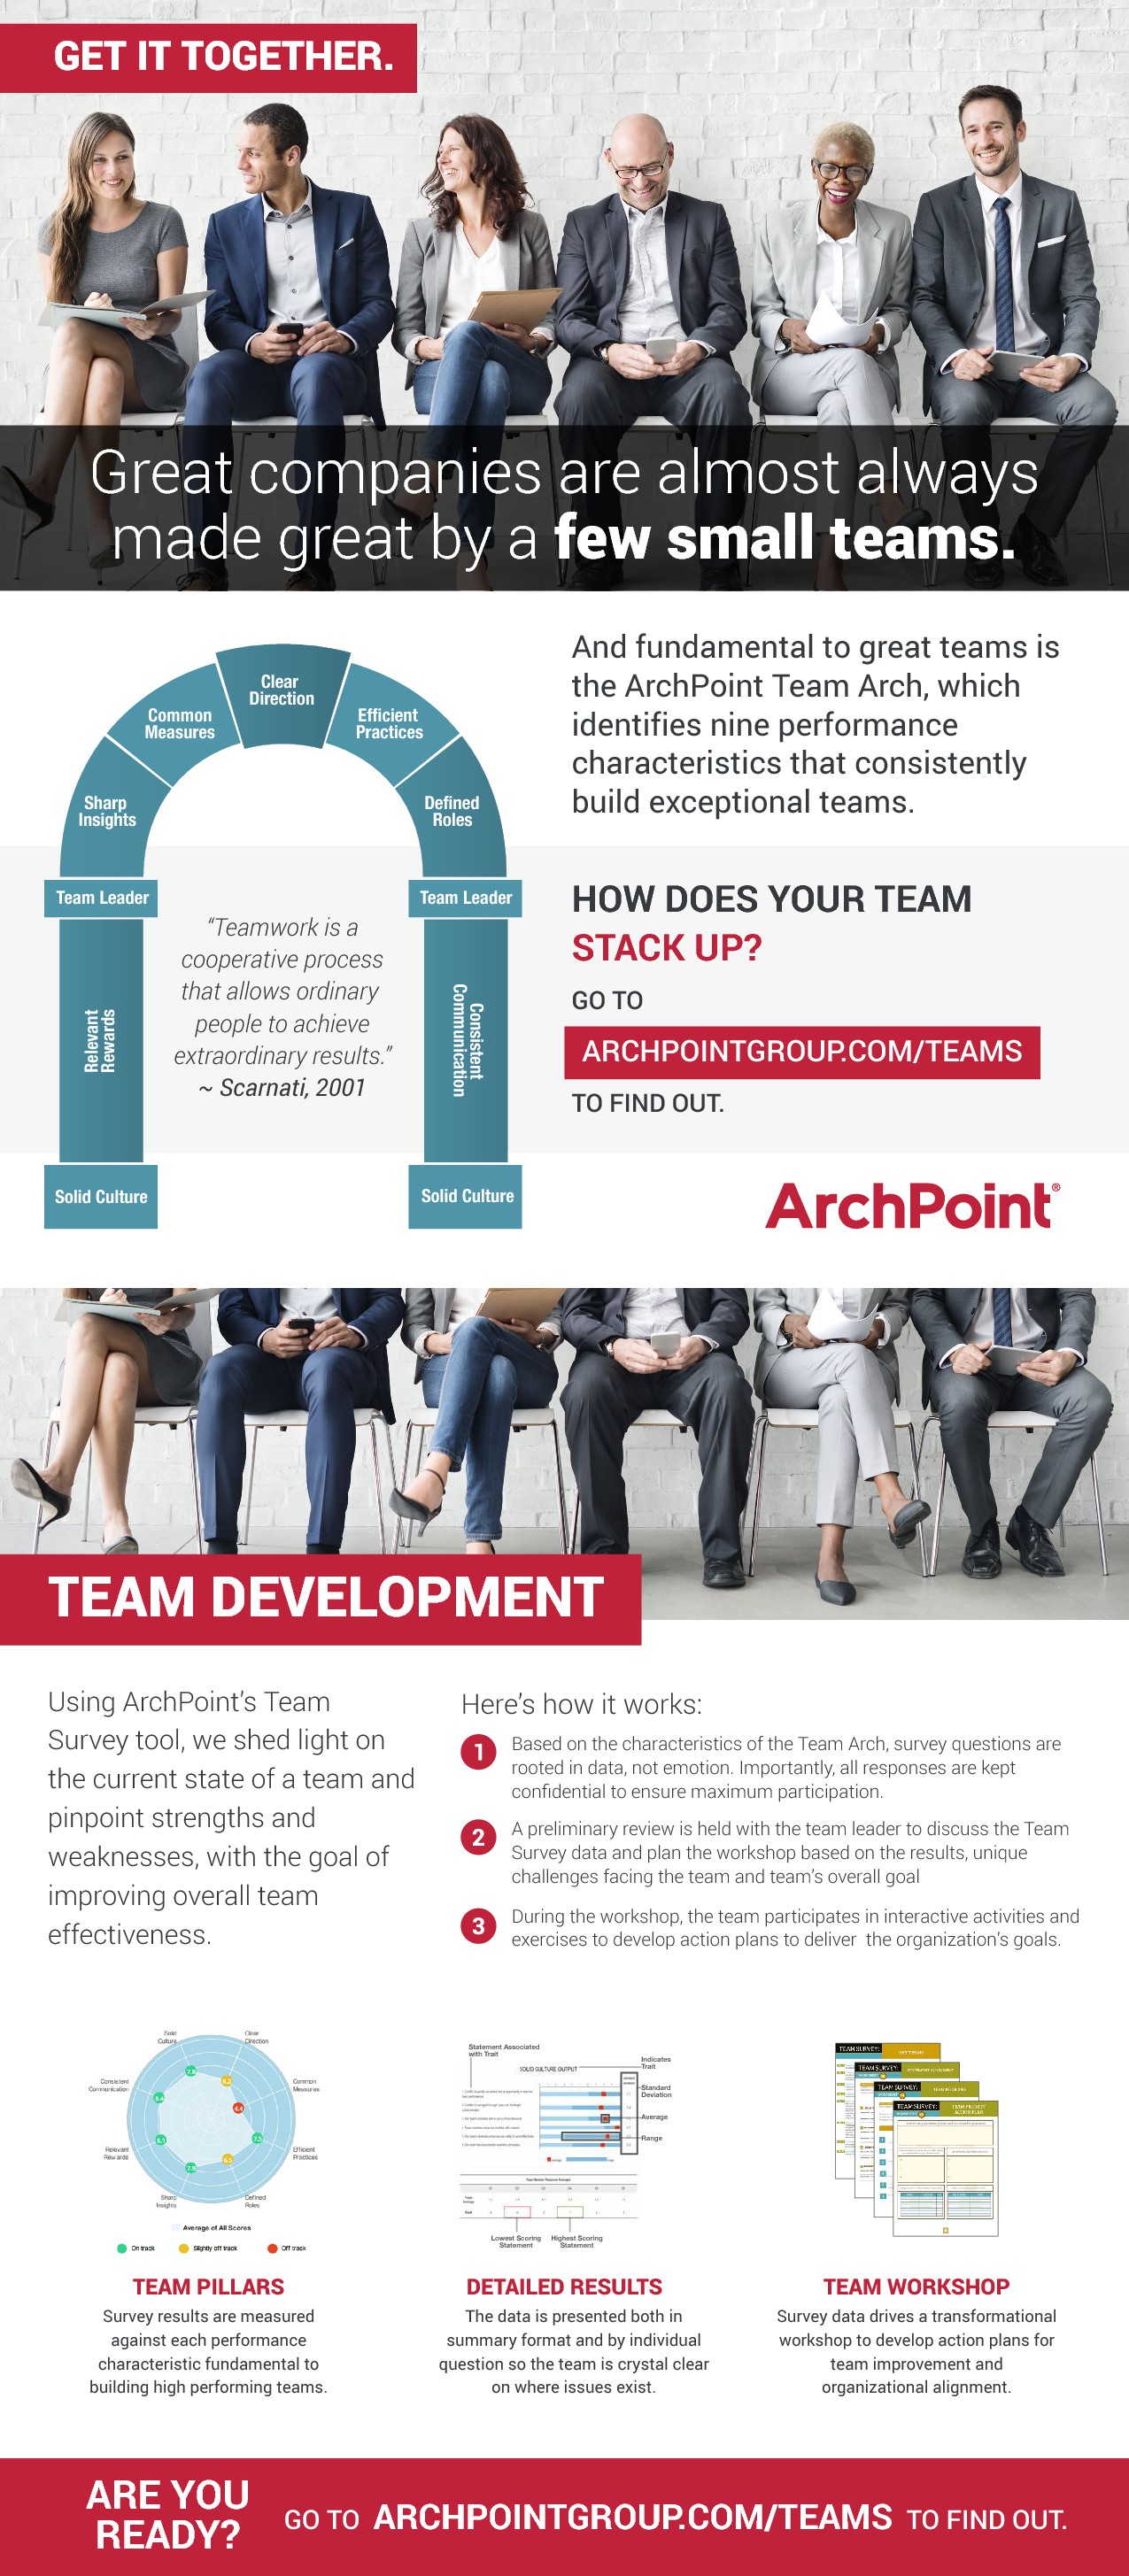 Simple flyer on teamwork - layout already designed